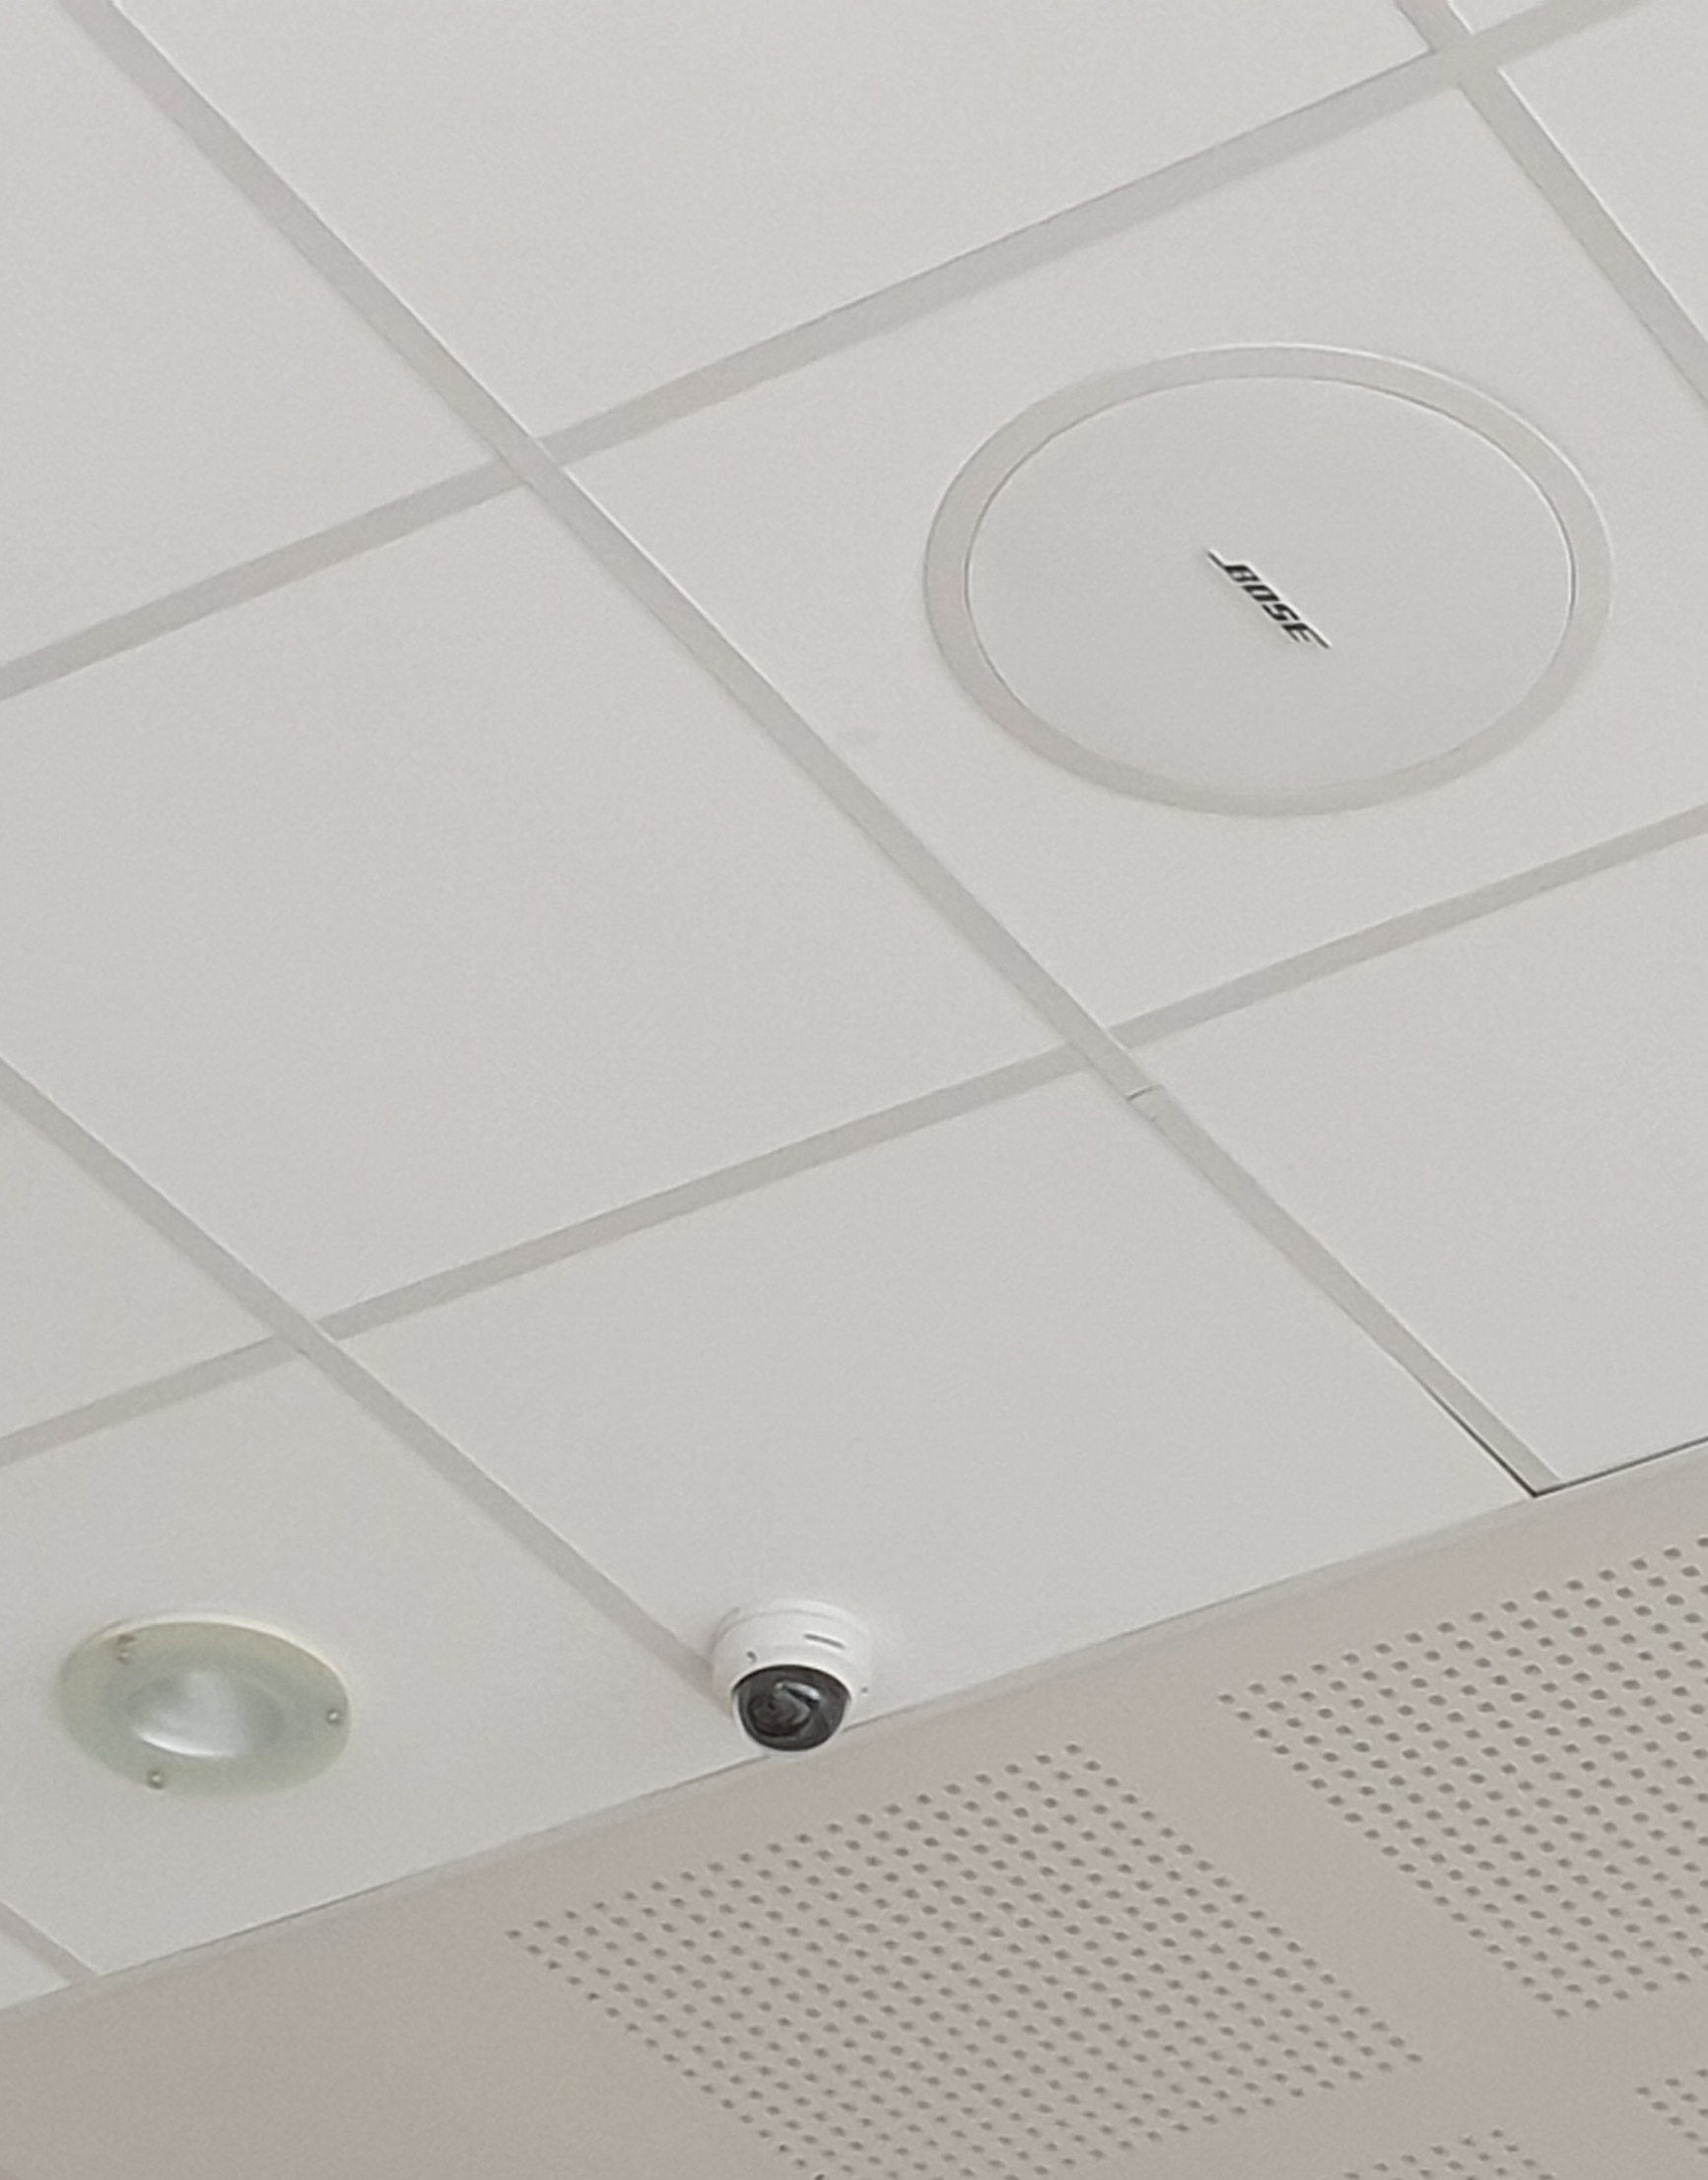 Bose ceiling speakers as part integrated EES Showhire PA installation